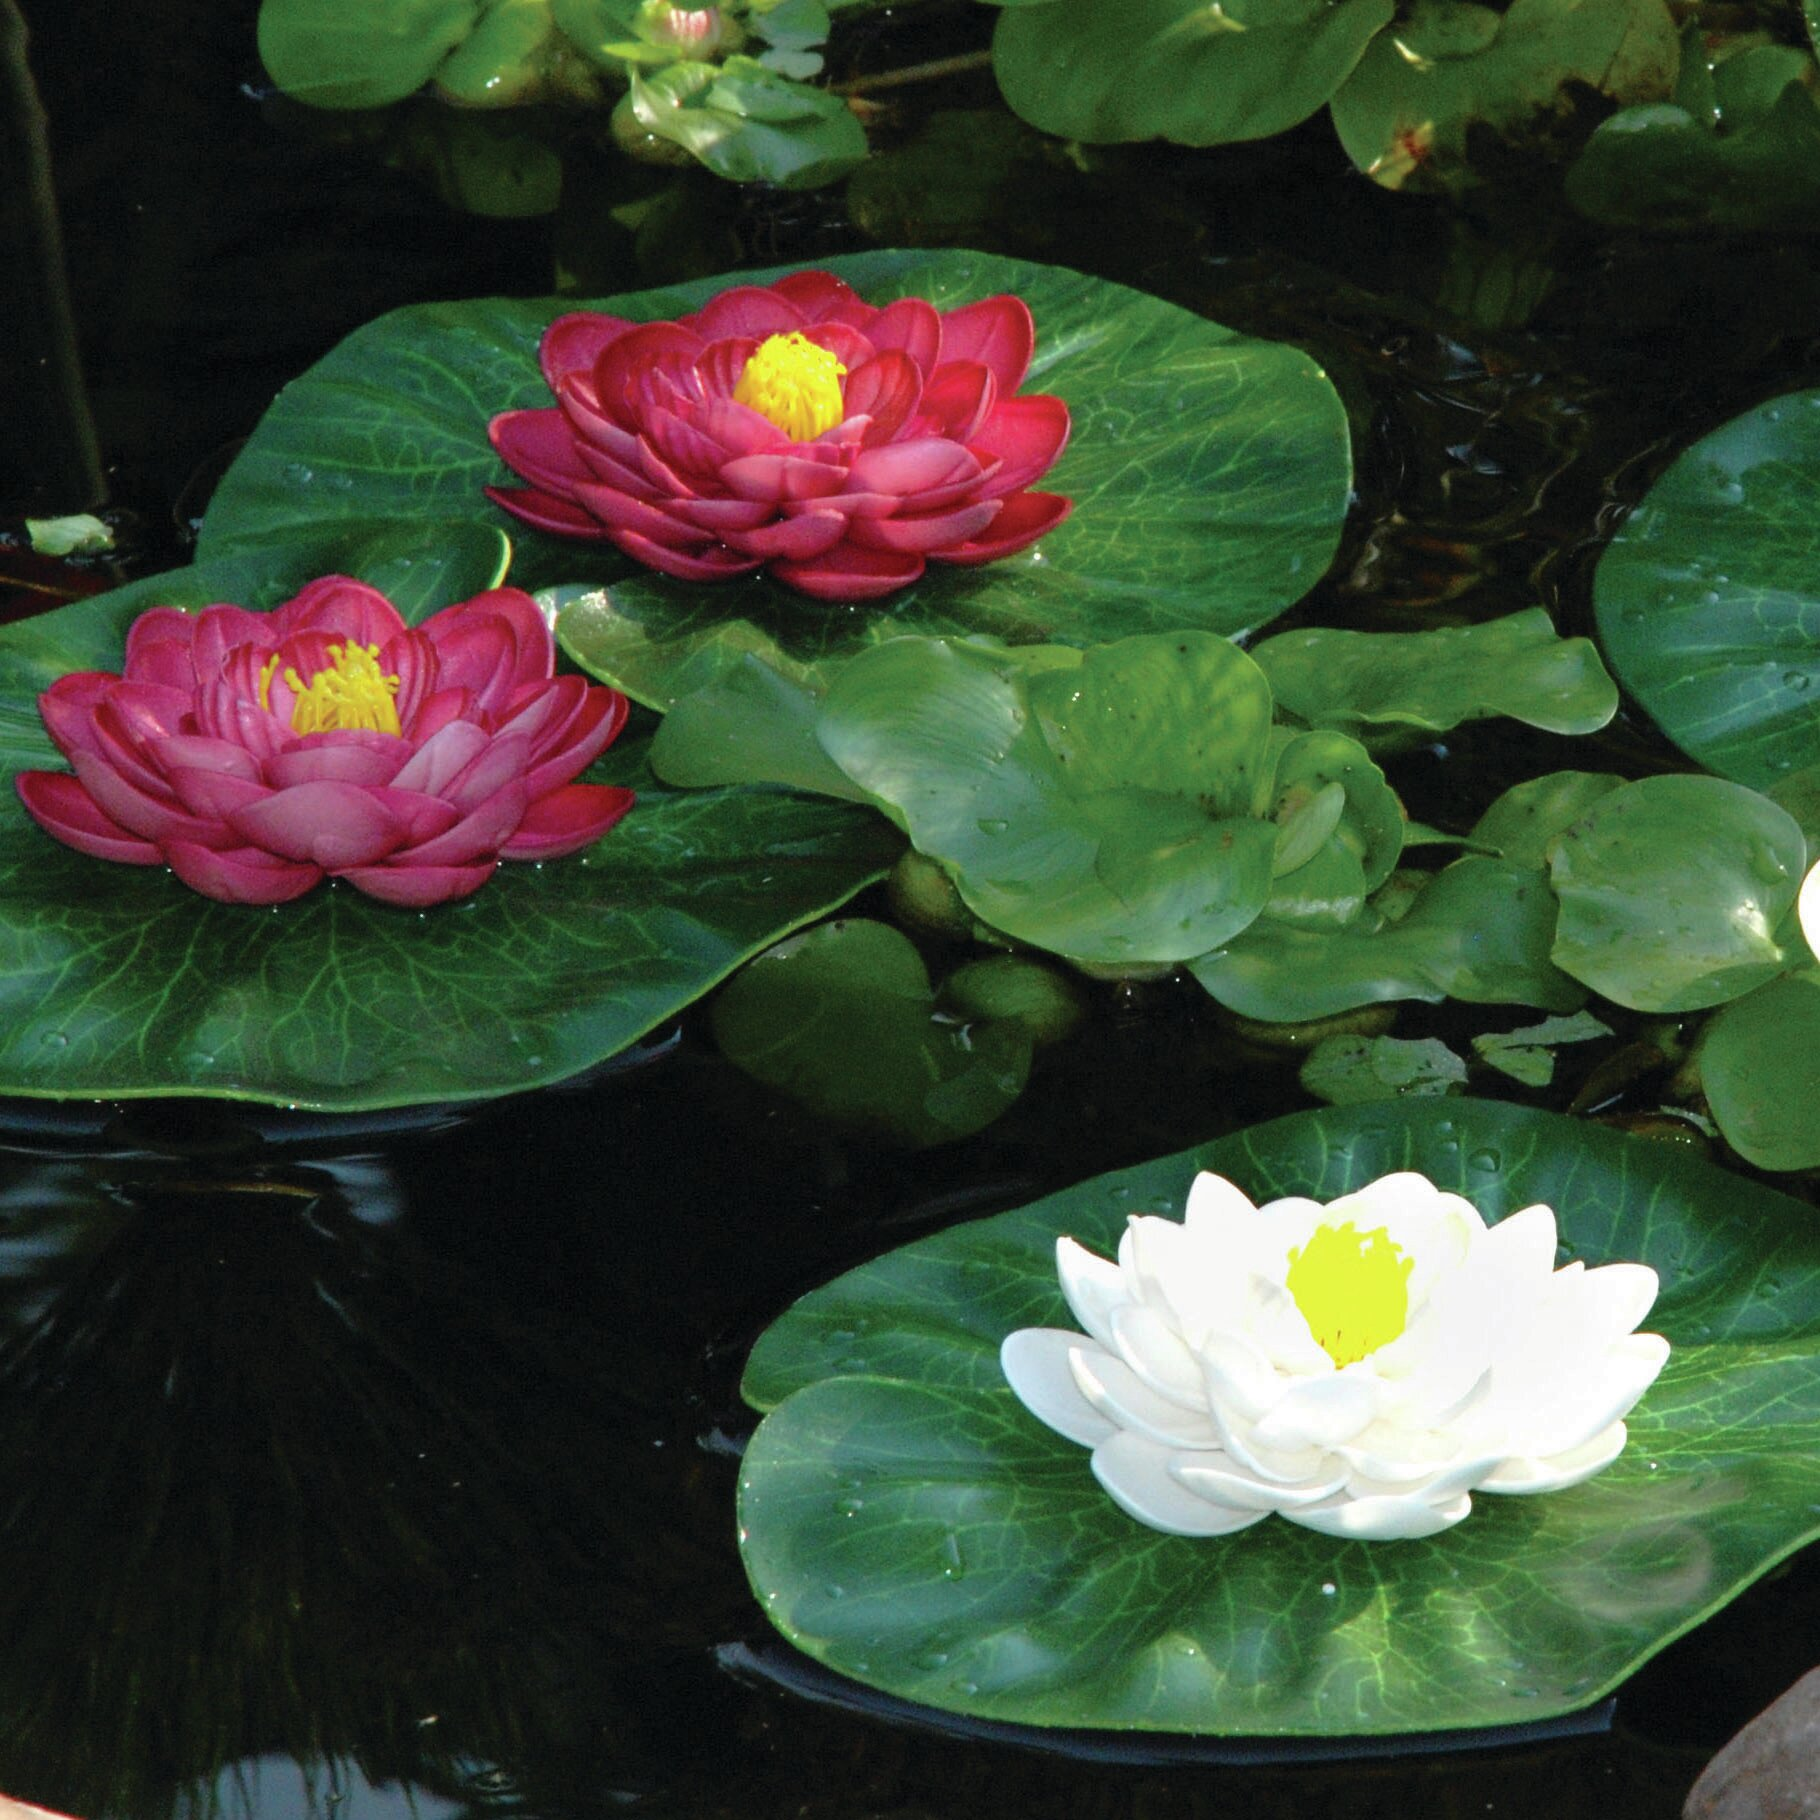 Pond boss 3 piece floating lily pad set reviews wayfair izmirmasajfo